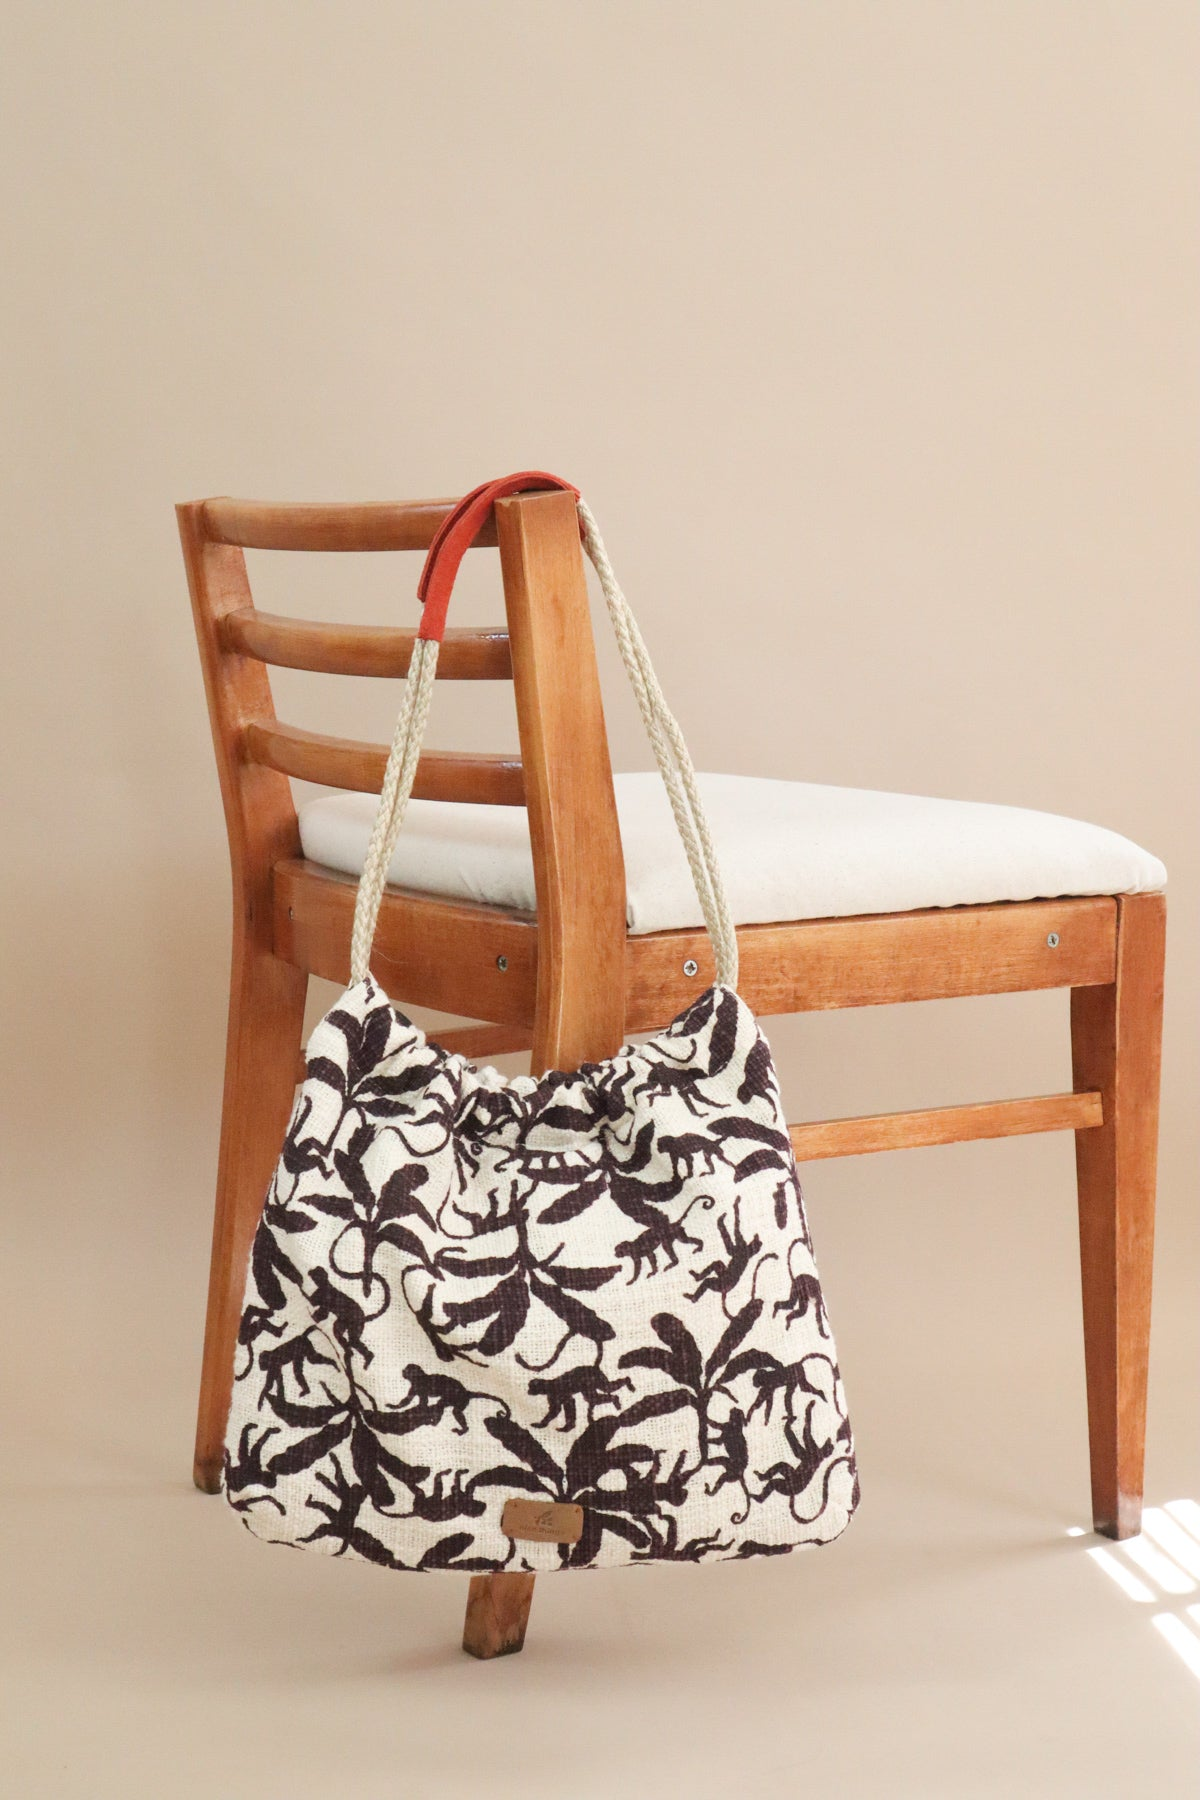 Monkey Print Bag - Beige